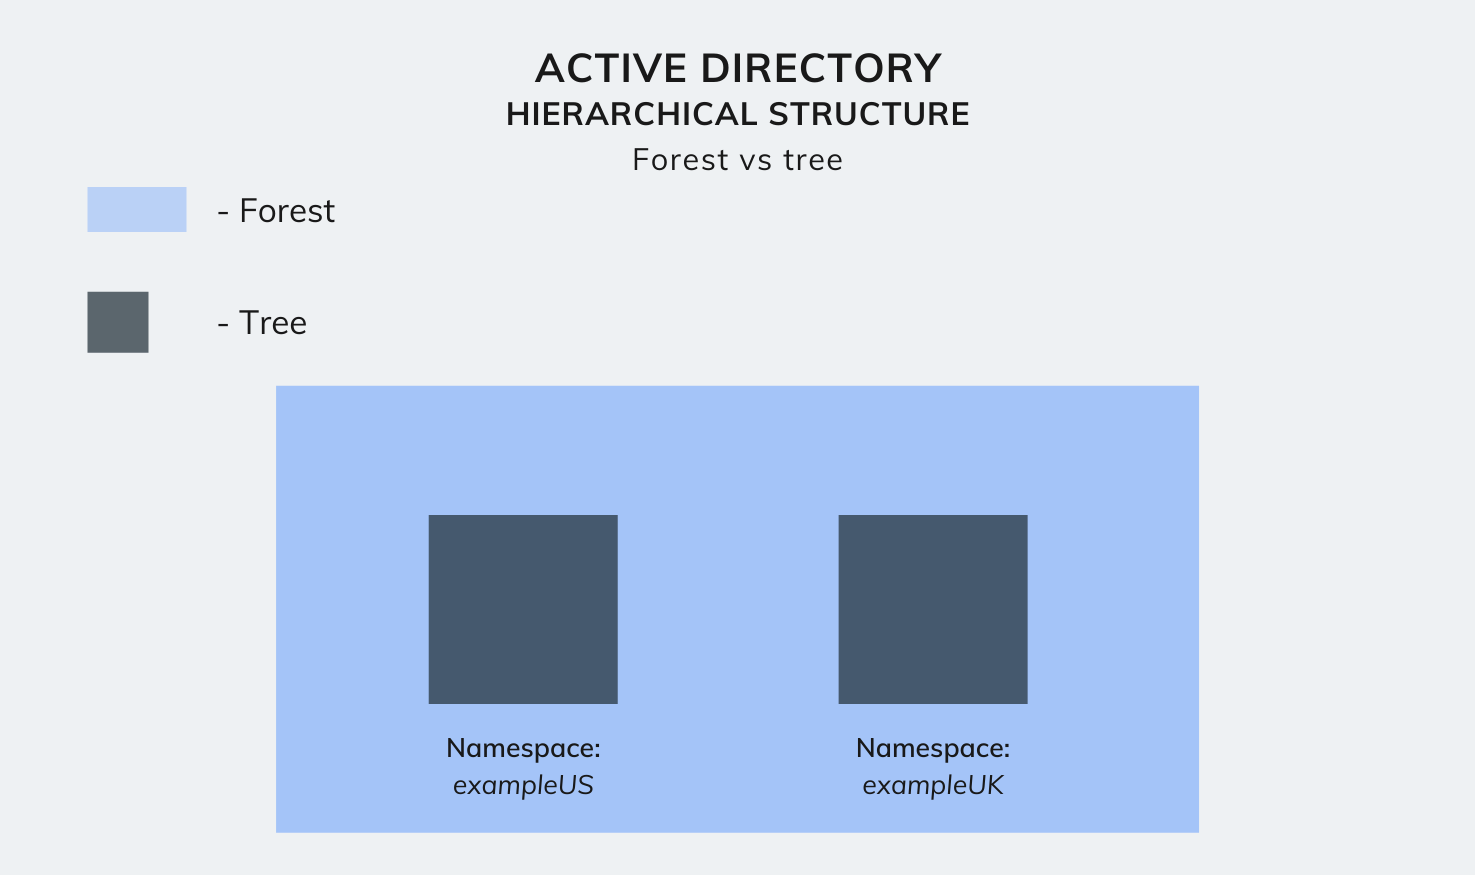 Active Directory hierarchical structure - Forest vs tree